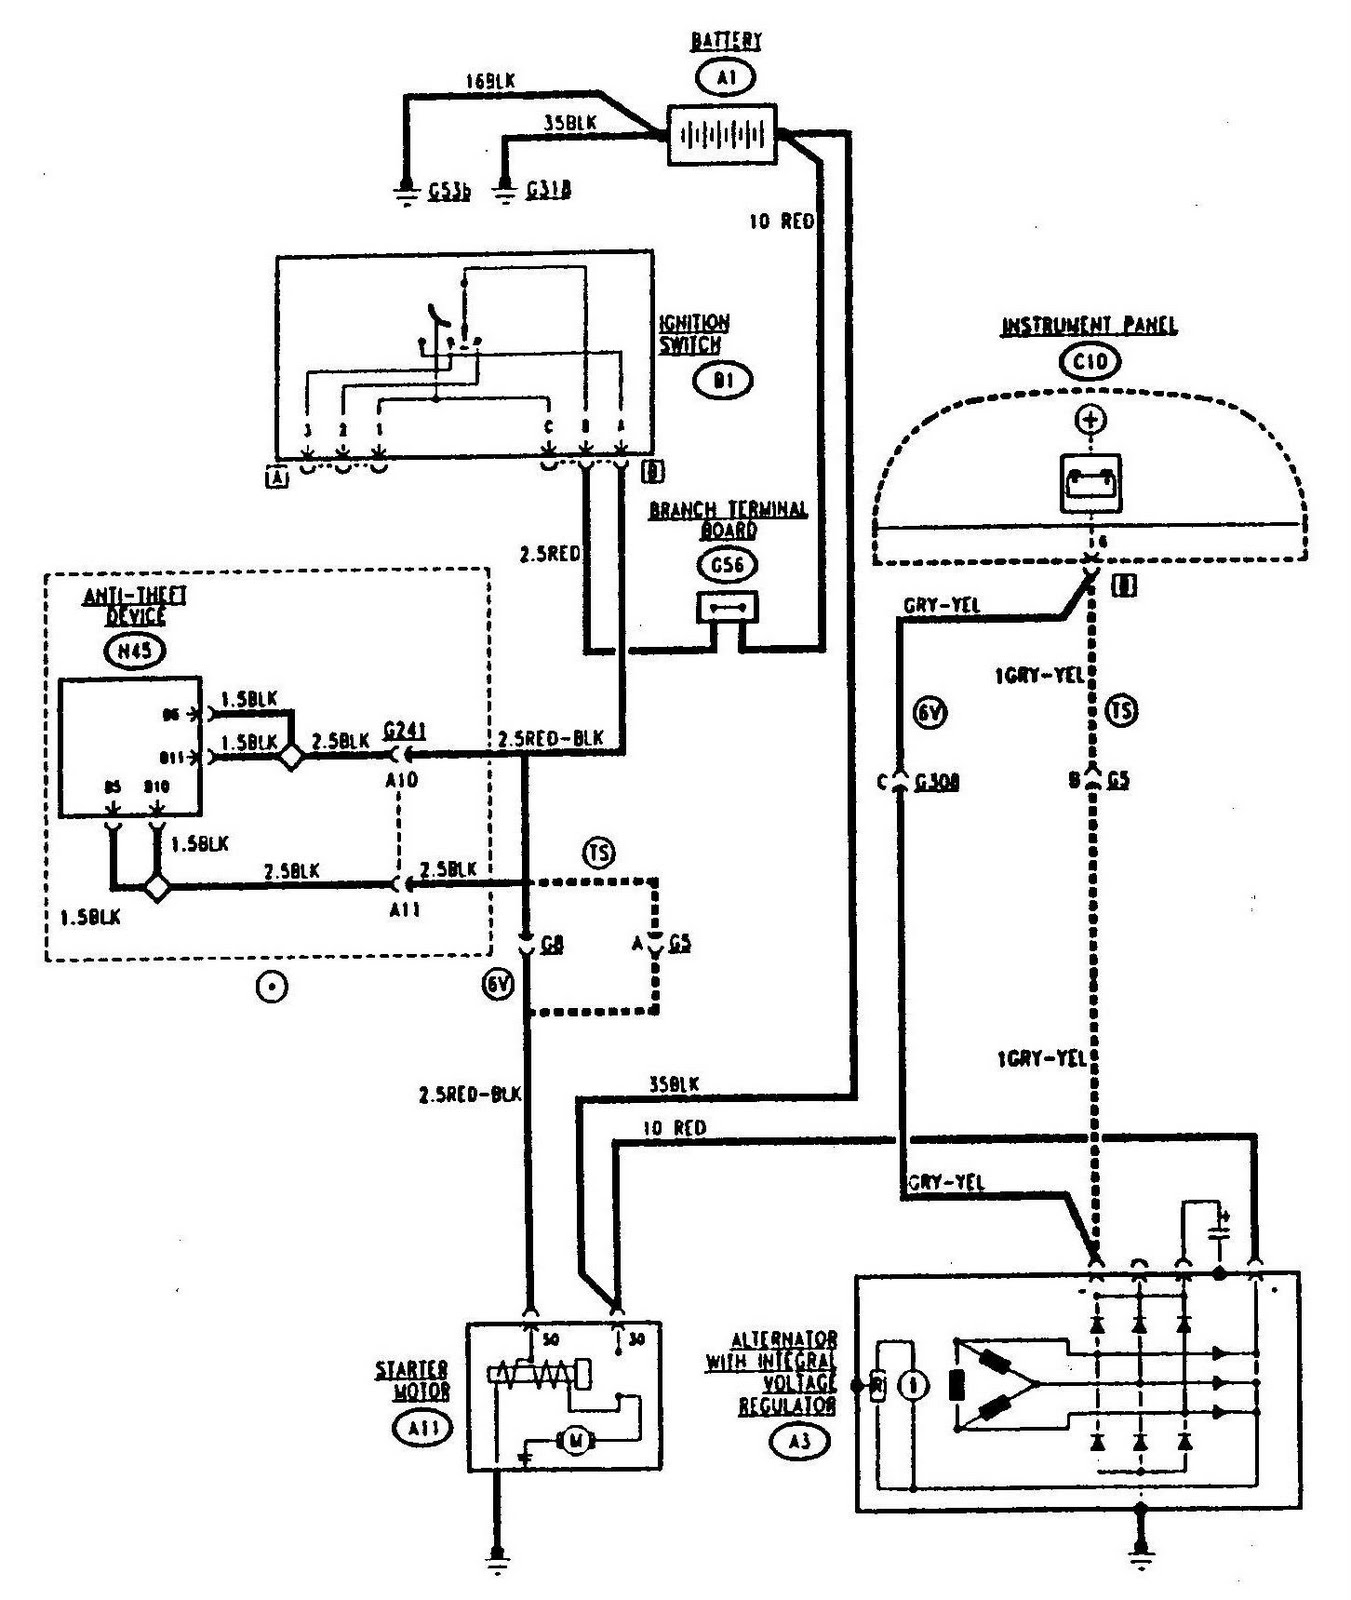 Electric Circuit Drawing At Free For Personal Use Wiring Diagrams Gates Download Diagram 1351x1600 Alfa Romeo 155 Starting And Charging Wiringdiagrams